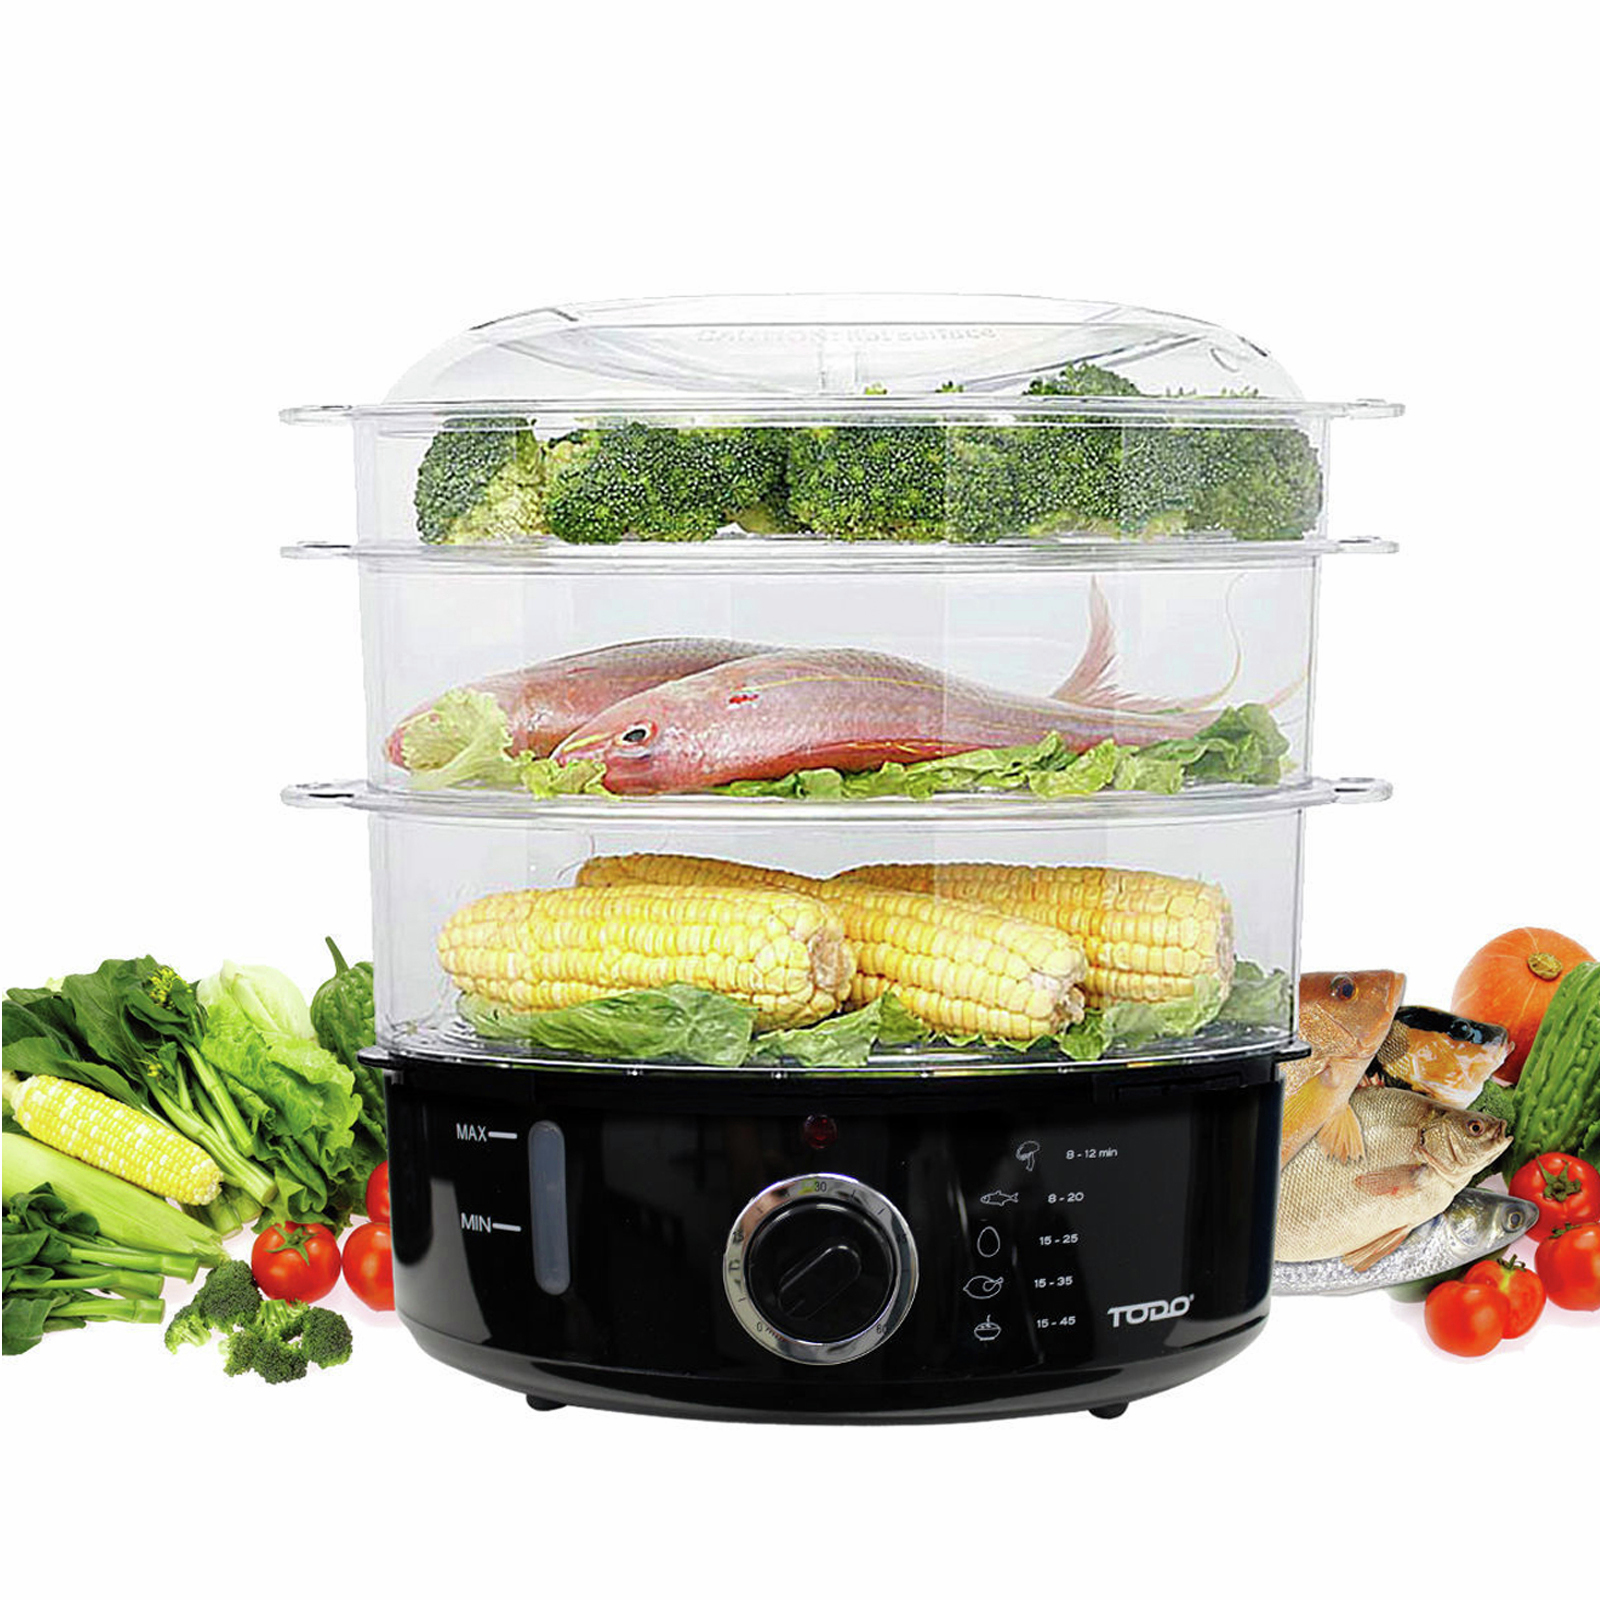 TODO 800W 9L Electric Steam Cooker Steamer 3 Tray